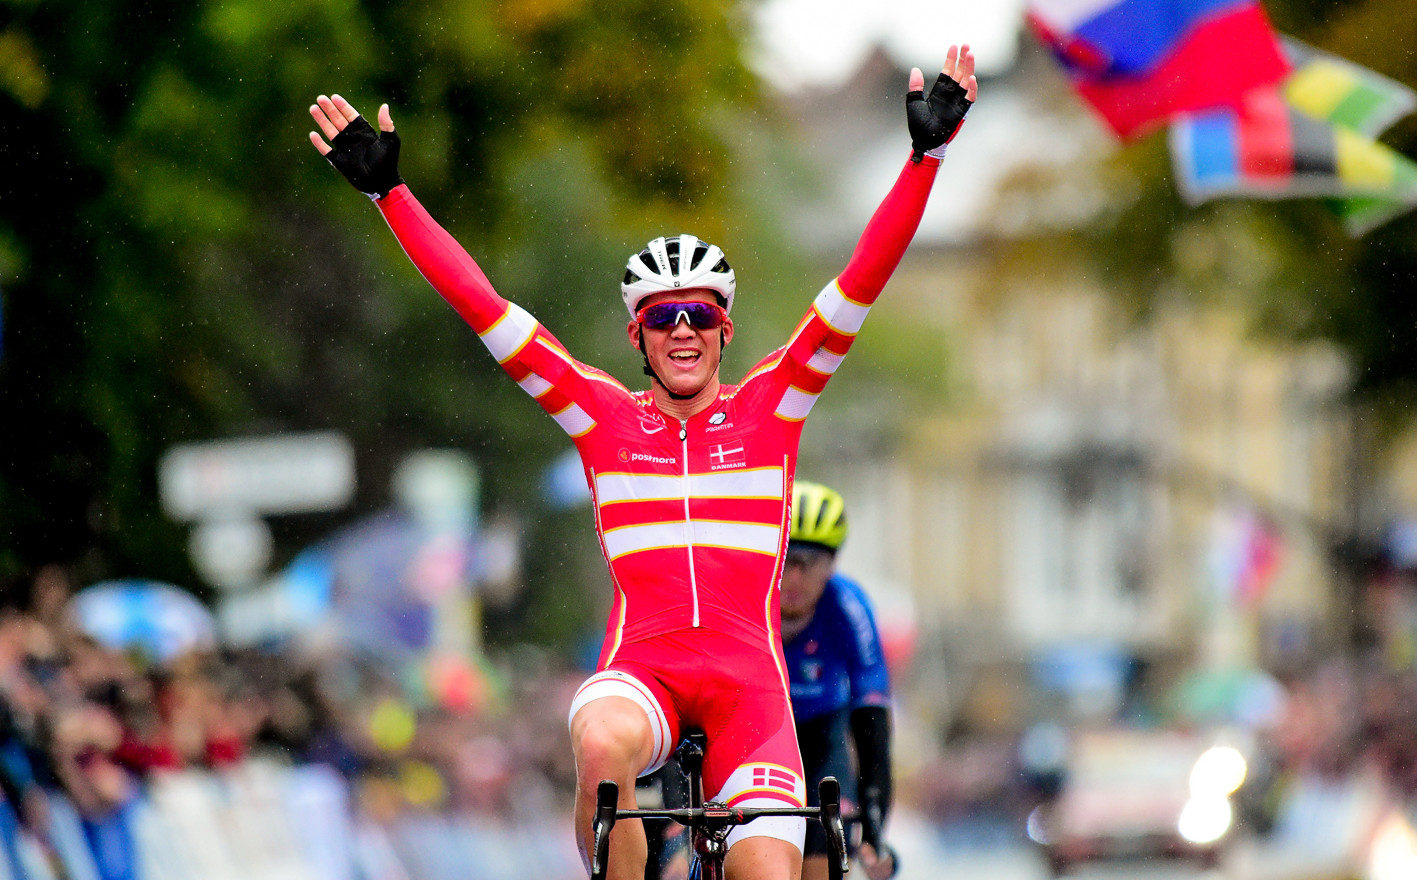 Mats Pedersen (DK) takes the world title at the 2019 Road World Championships in Yorkshire.